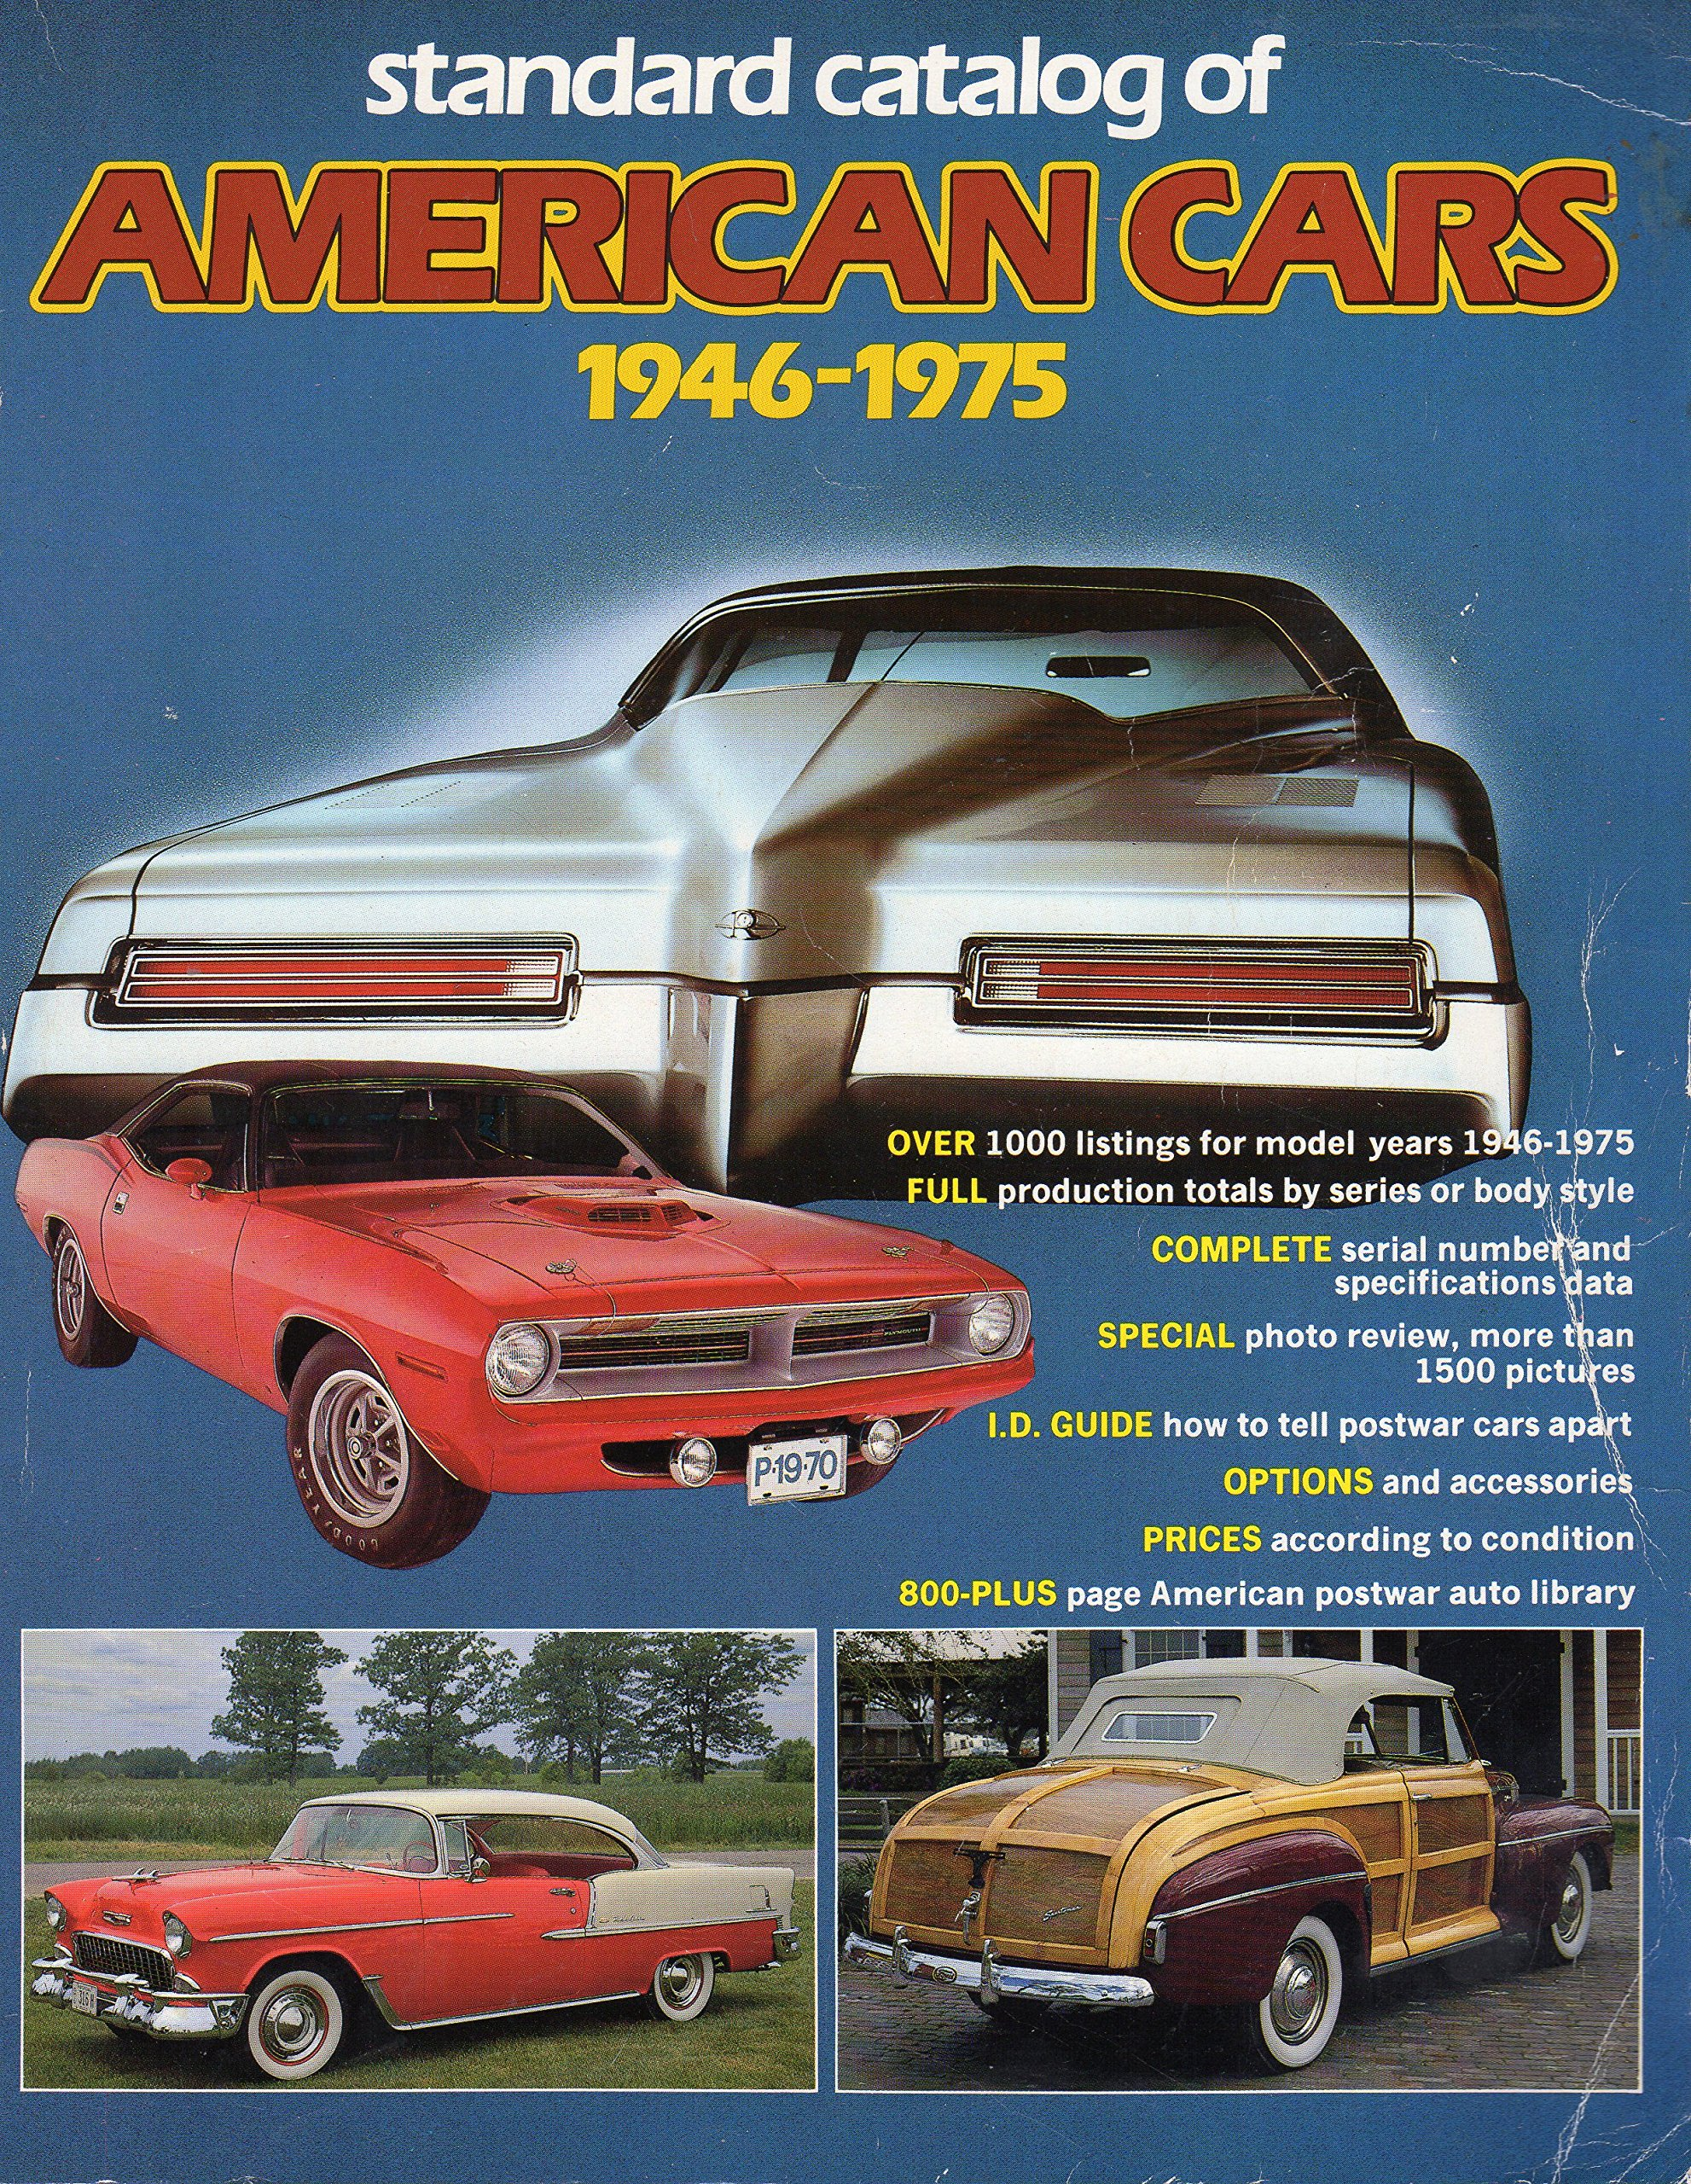 Standard Catalogue of American Cars, 1946-75: John Gunnell: 9780873410960:  Amazon.com: Books